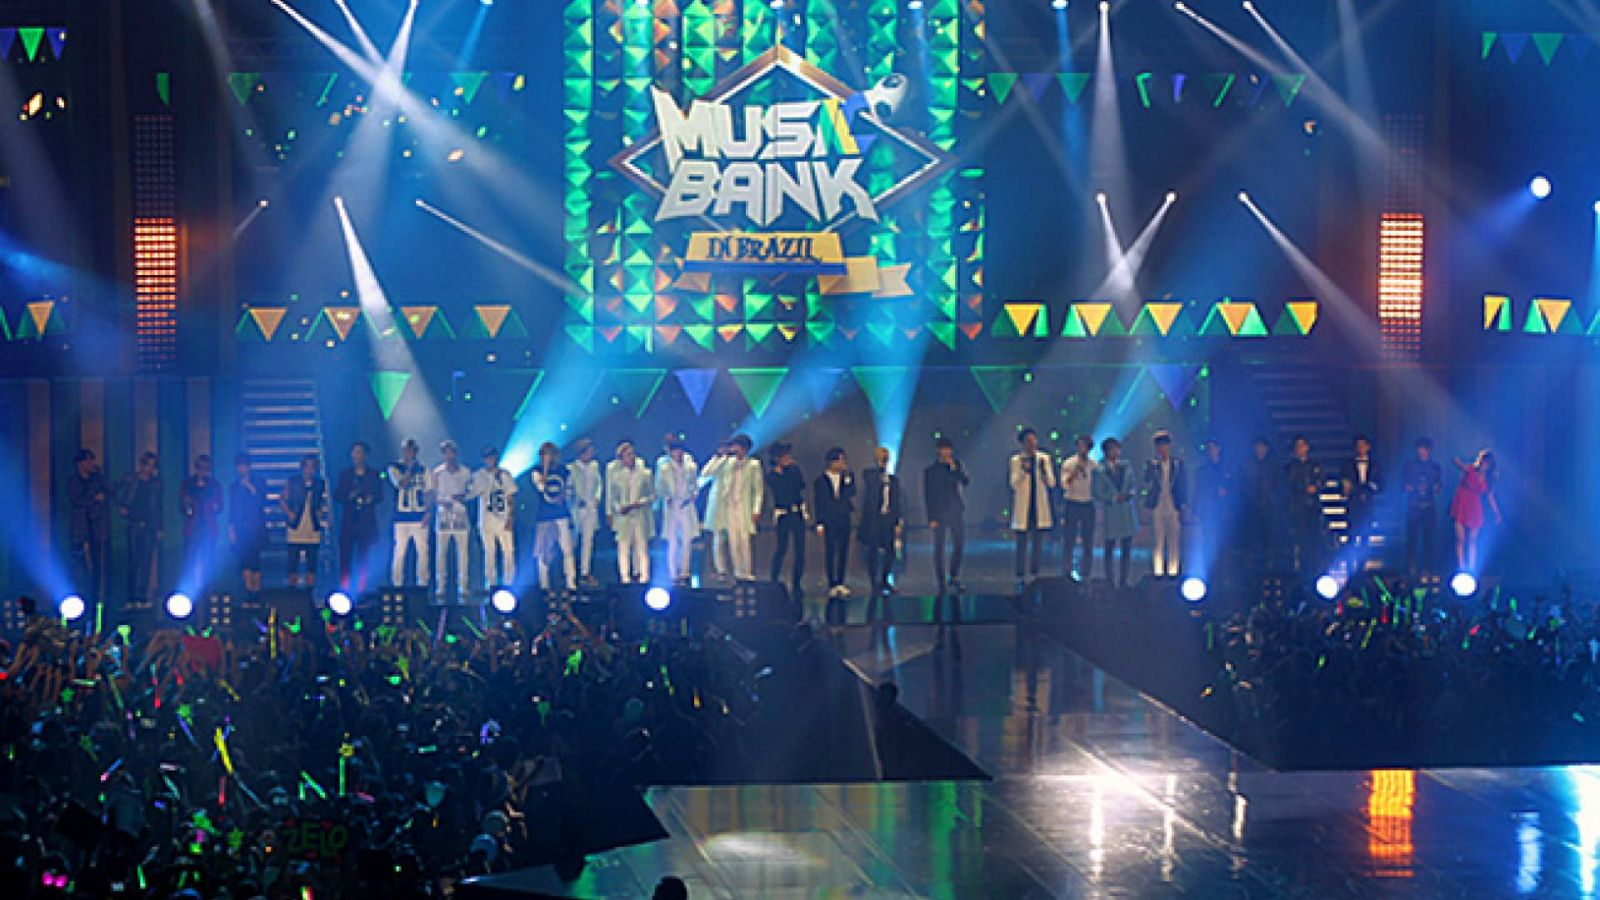 Music Bank in Brazil © Dennis Himura